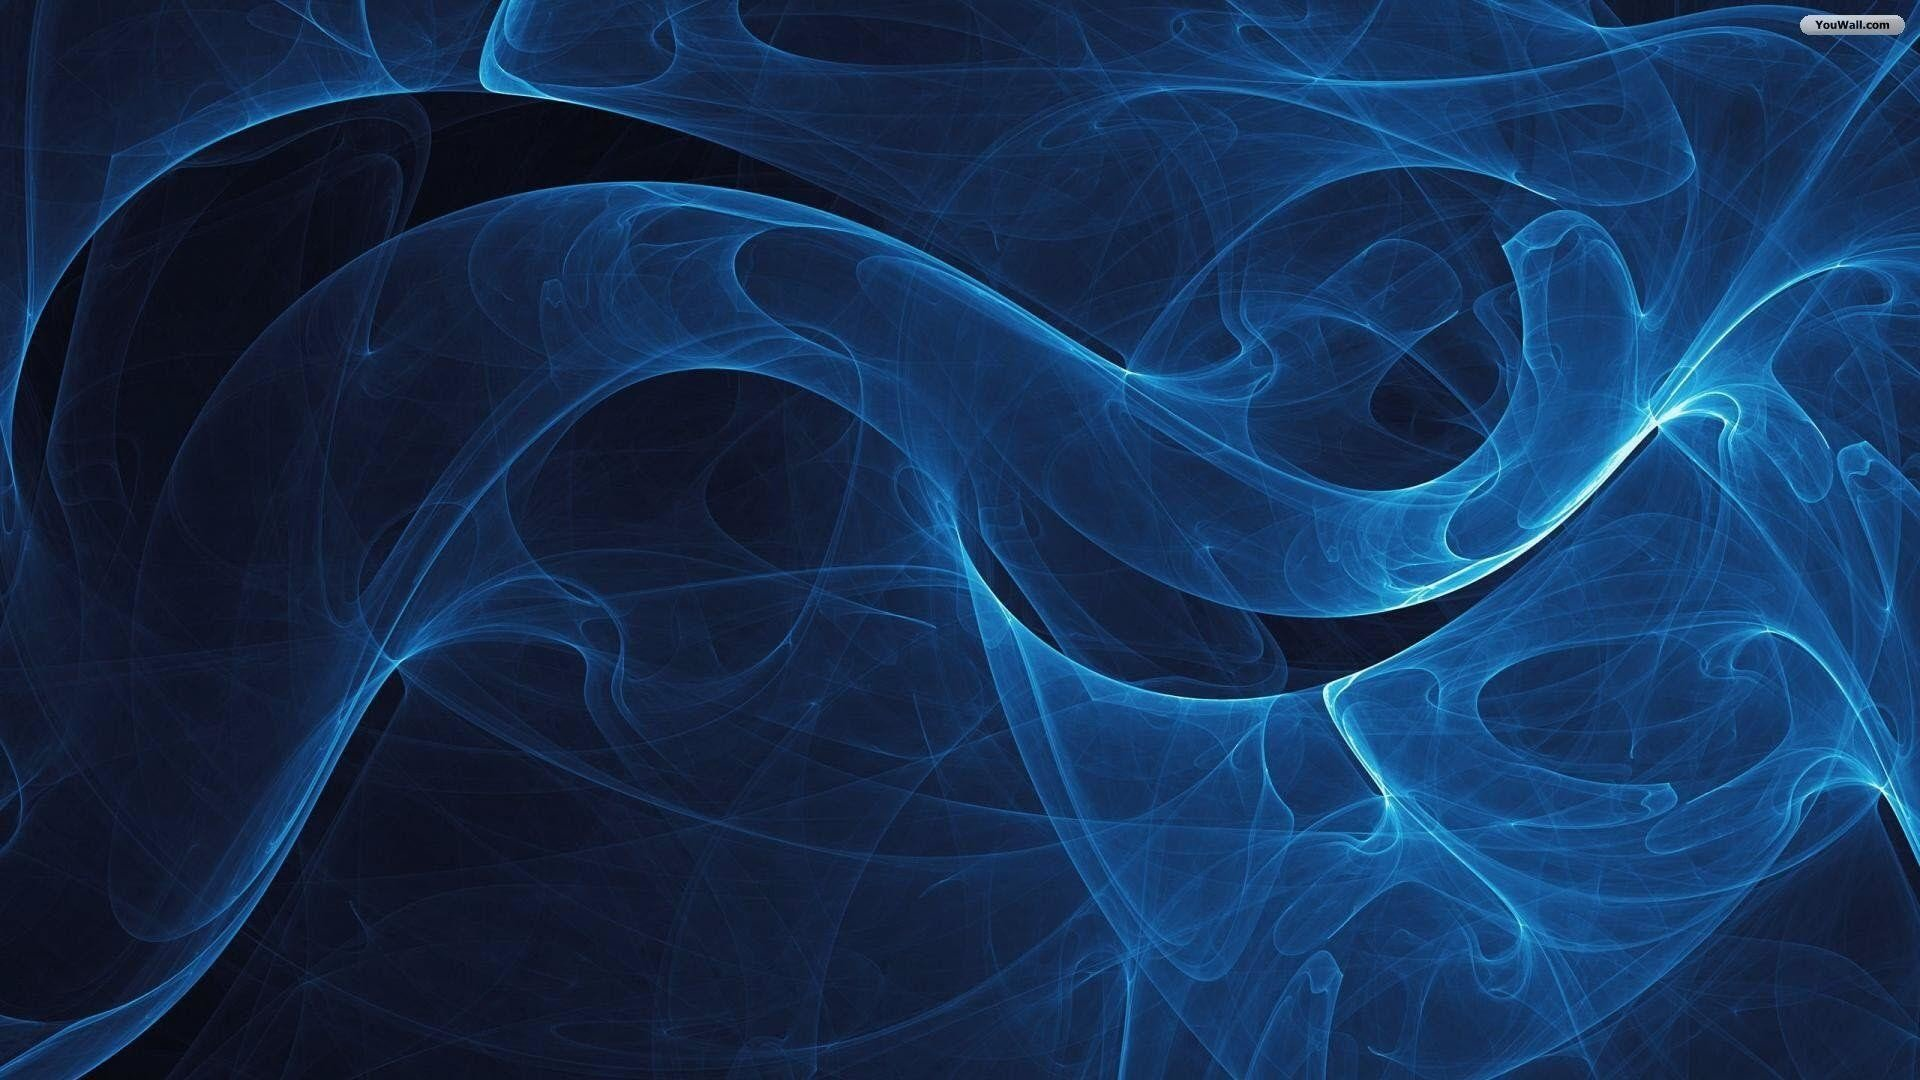 36 Blue Abstract 1080p Wallpapers On Wallpapersafari